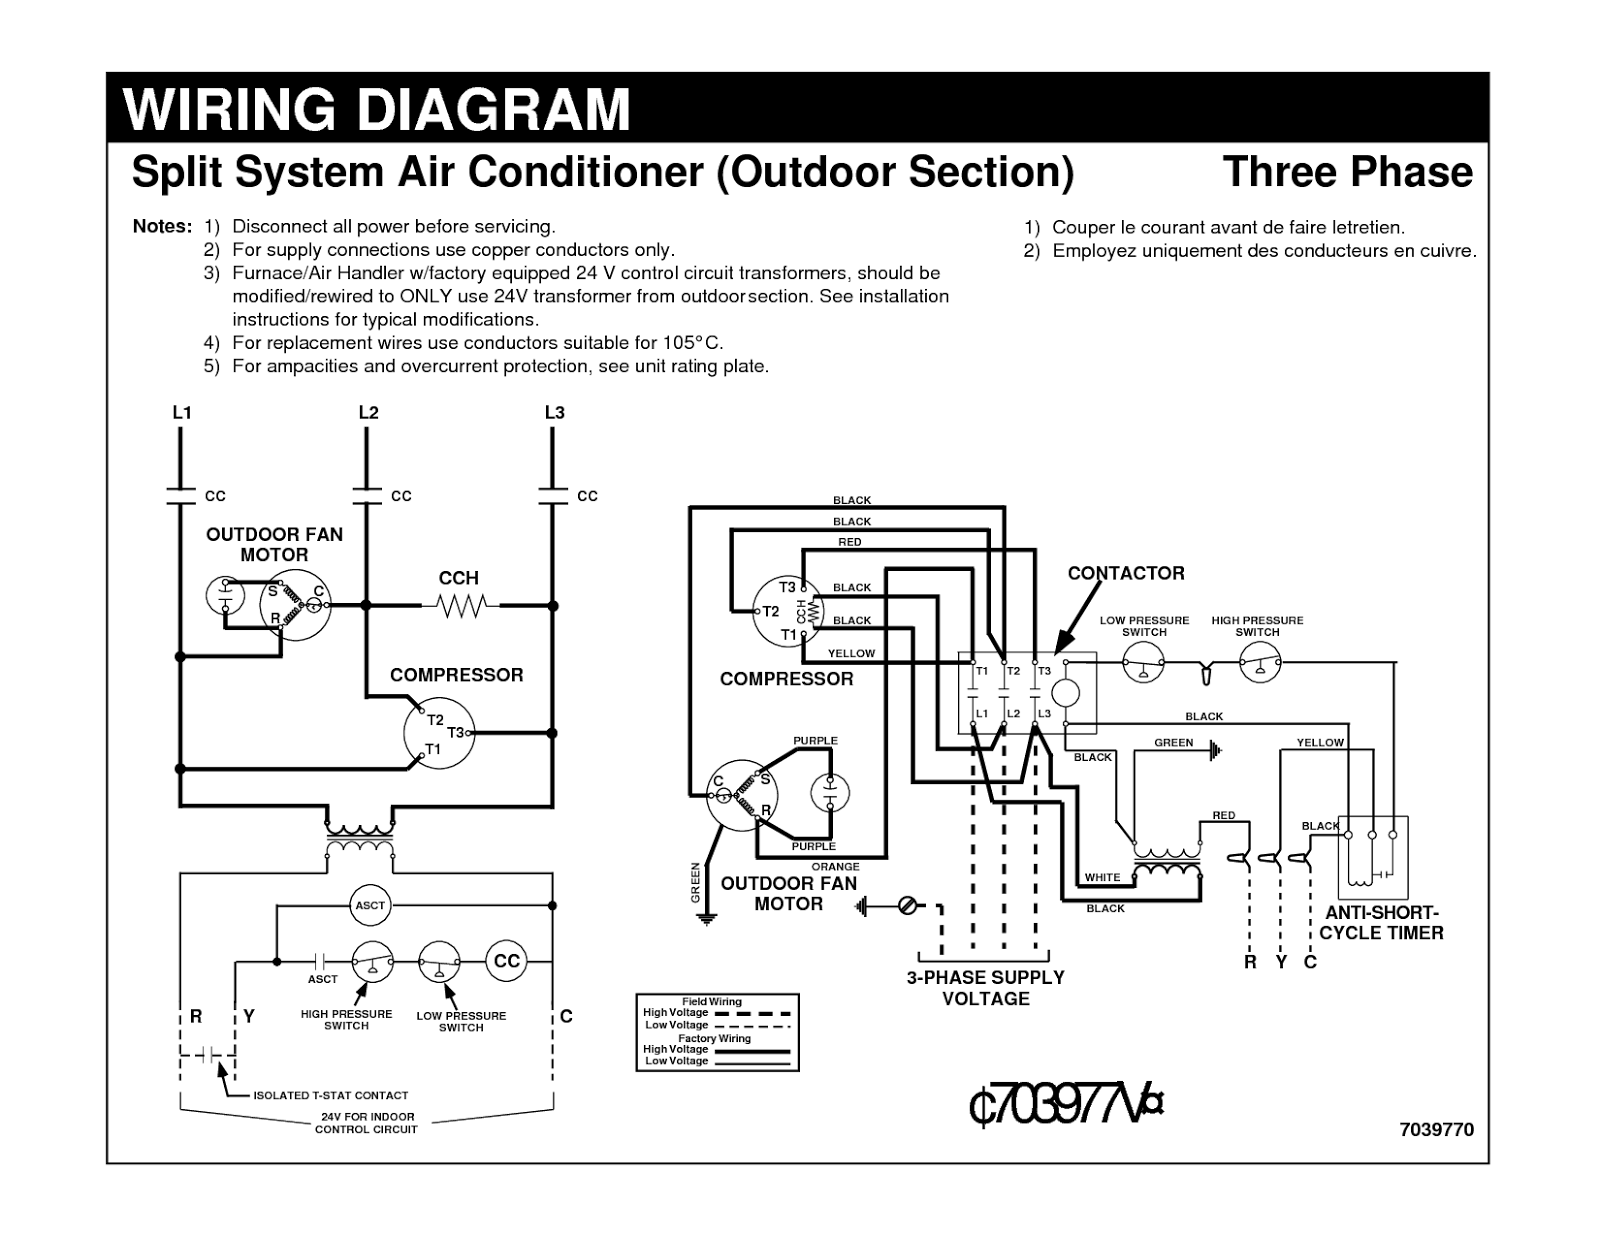 grandaire ac wiring diagram simple wiring schema air conditioning wiring diagrams ac wiring diagrams [ 1600 x 1236 Pixel ]